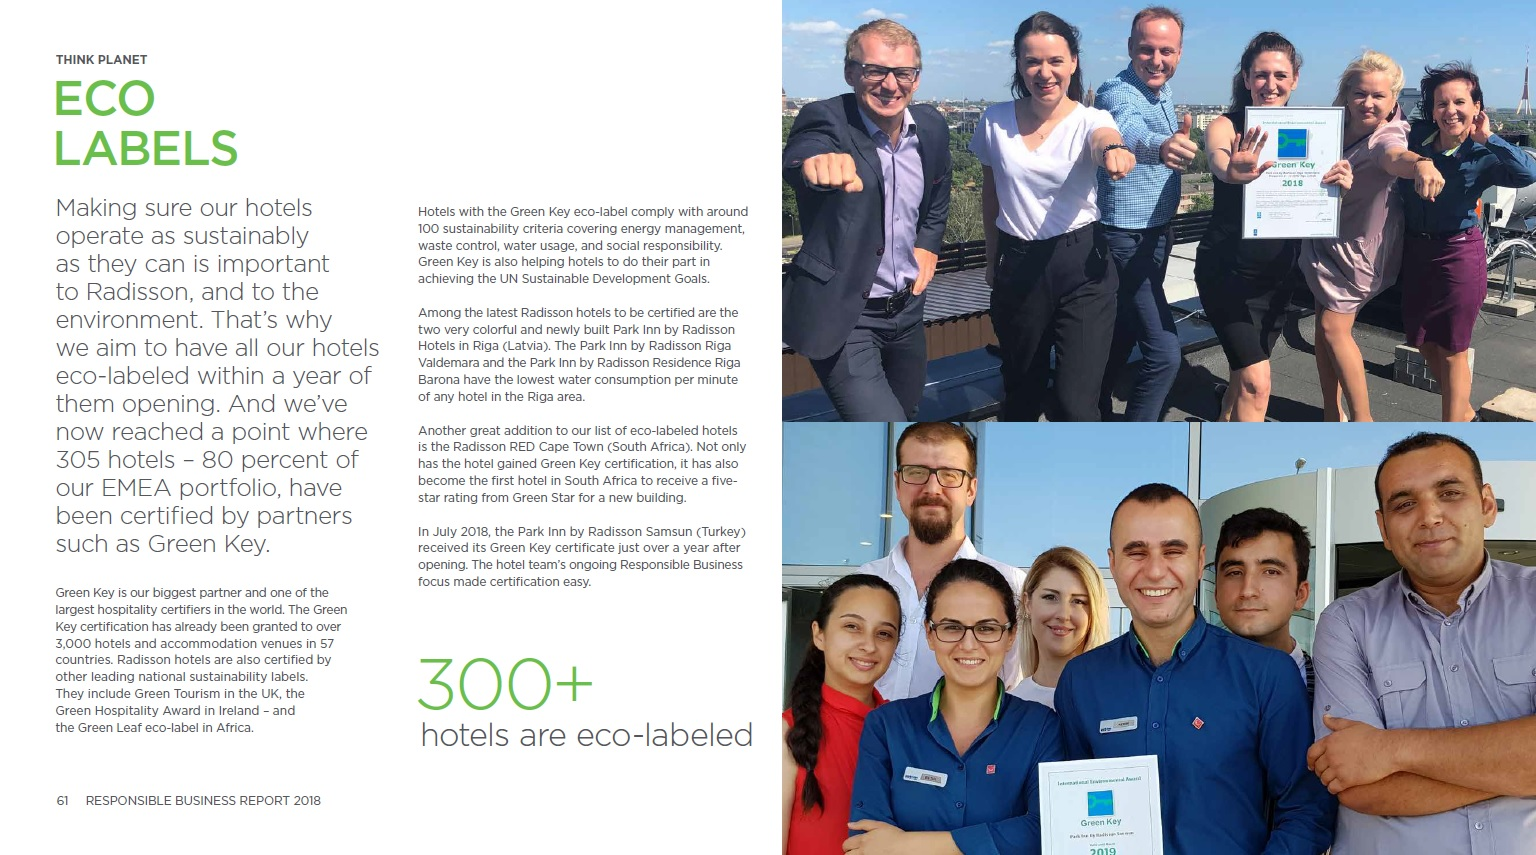 Radisson-2018SustainabilityReport-Ecolabelspage.jpg